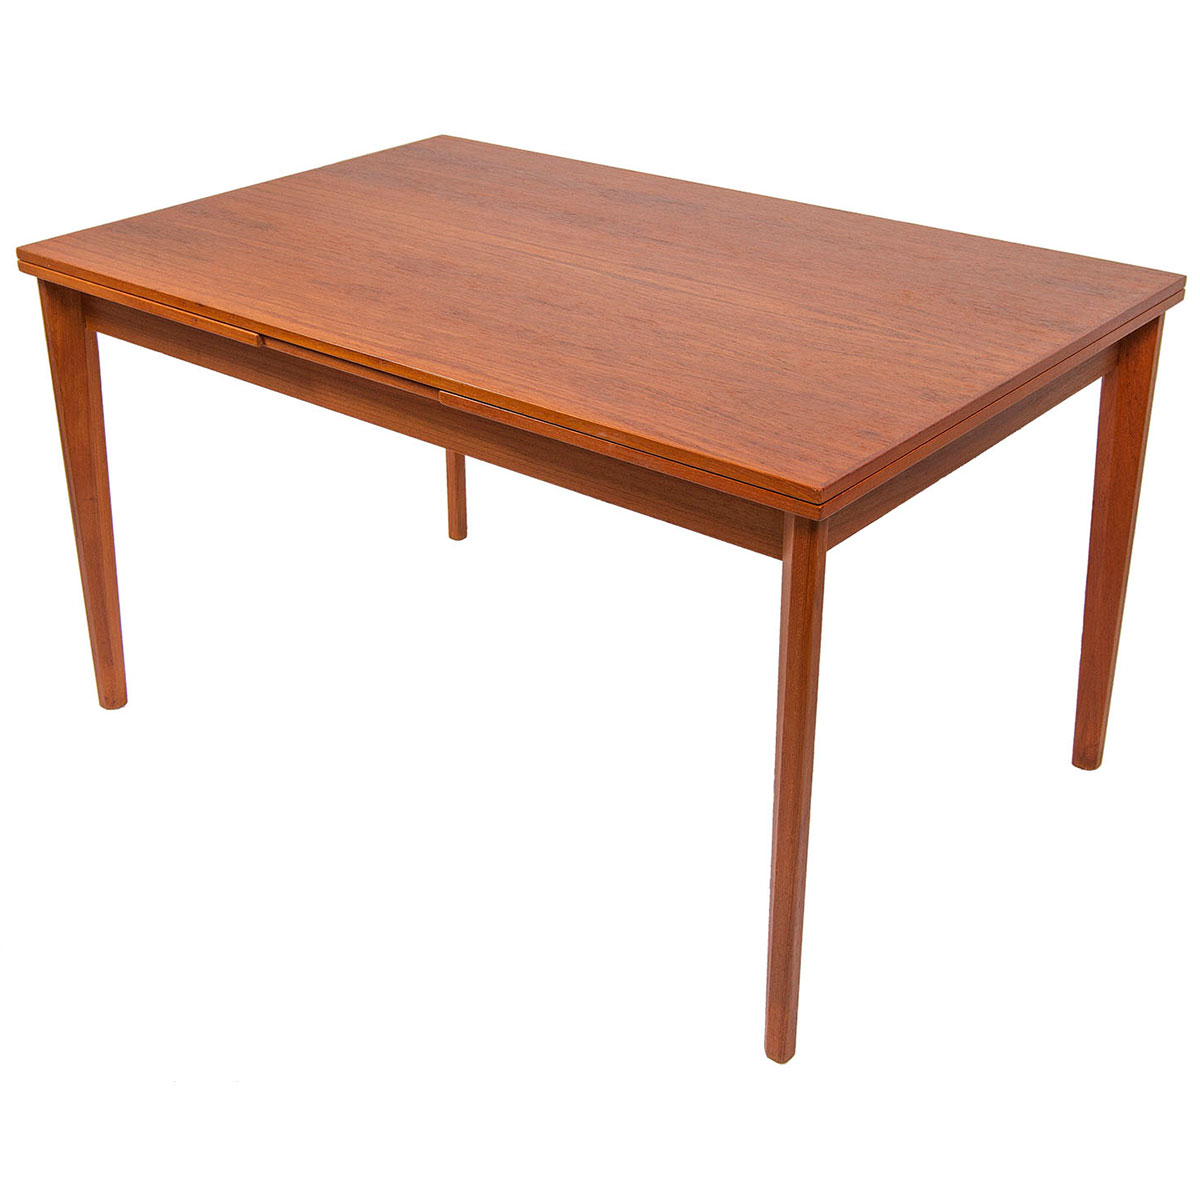 Compact Danish Modern Teak Expanding Dining Table